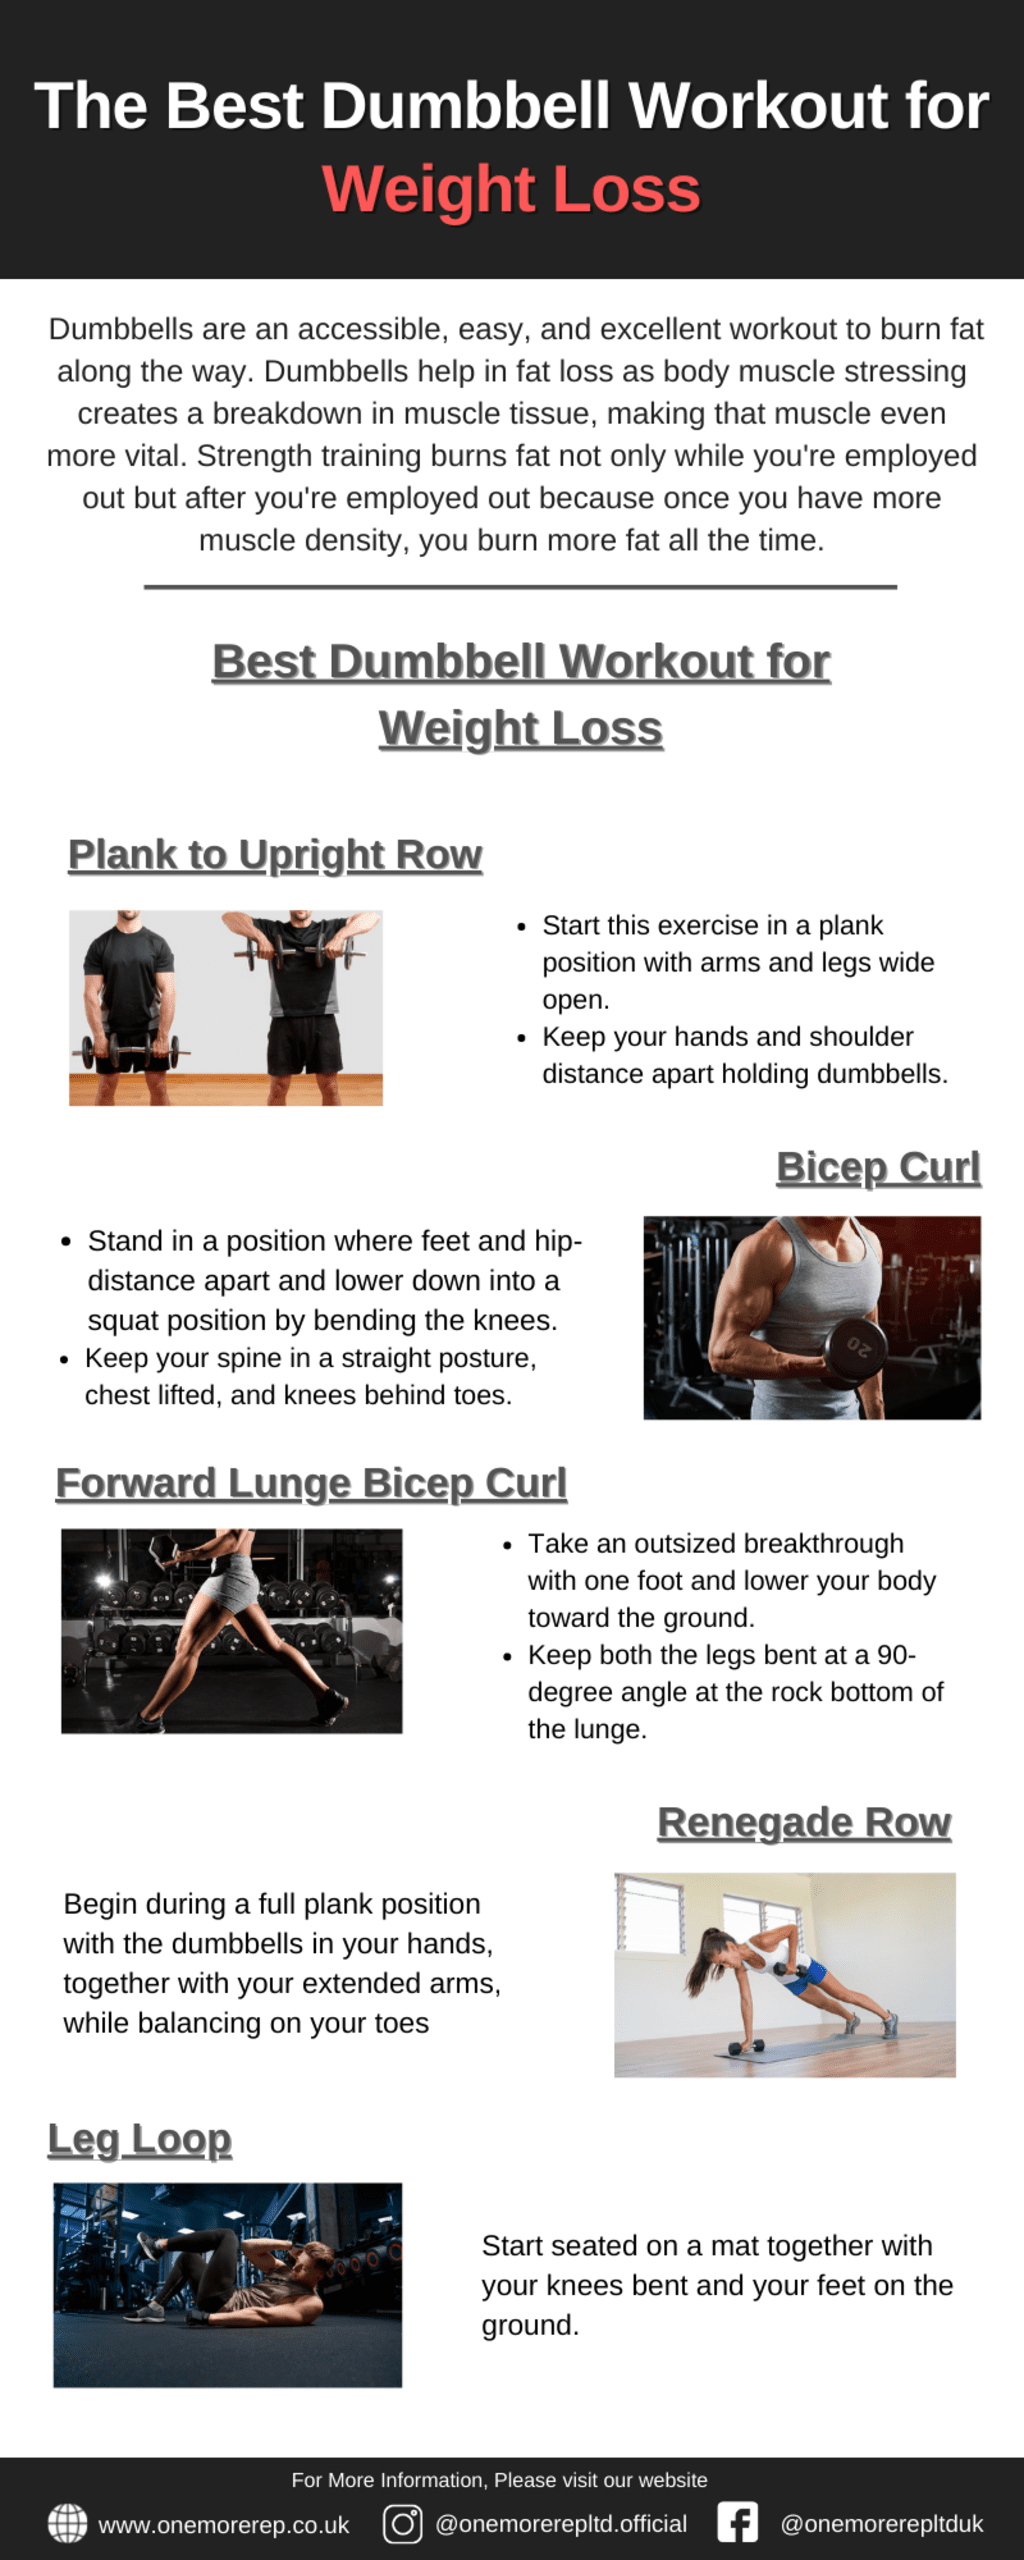 The Best Dumbbell Workout for Weight Loss via OneMoreRep